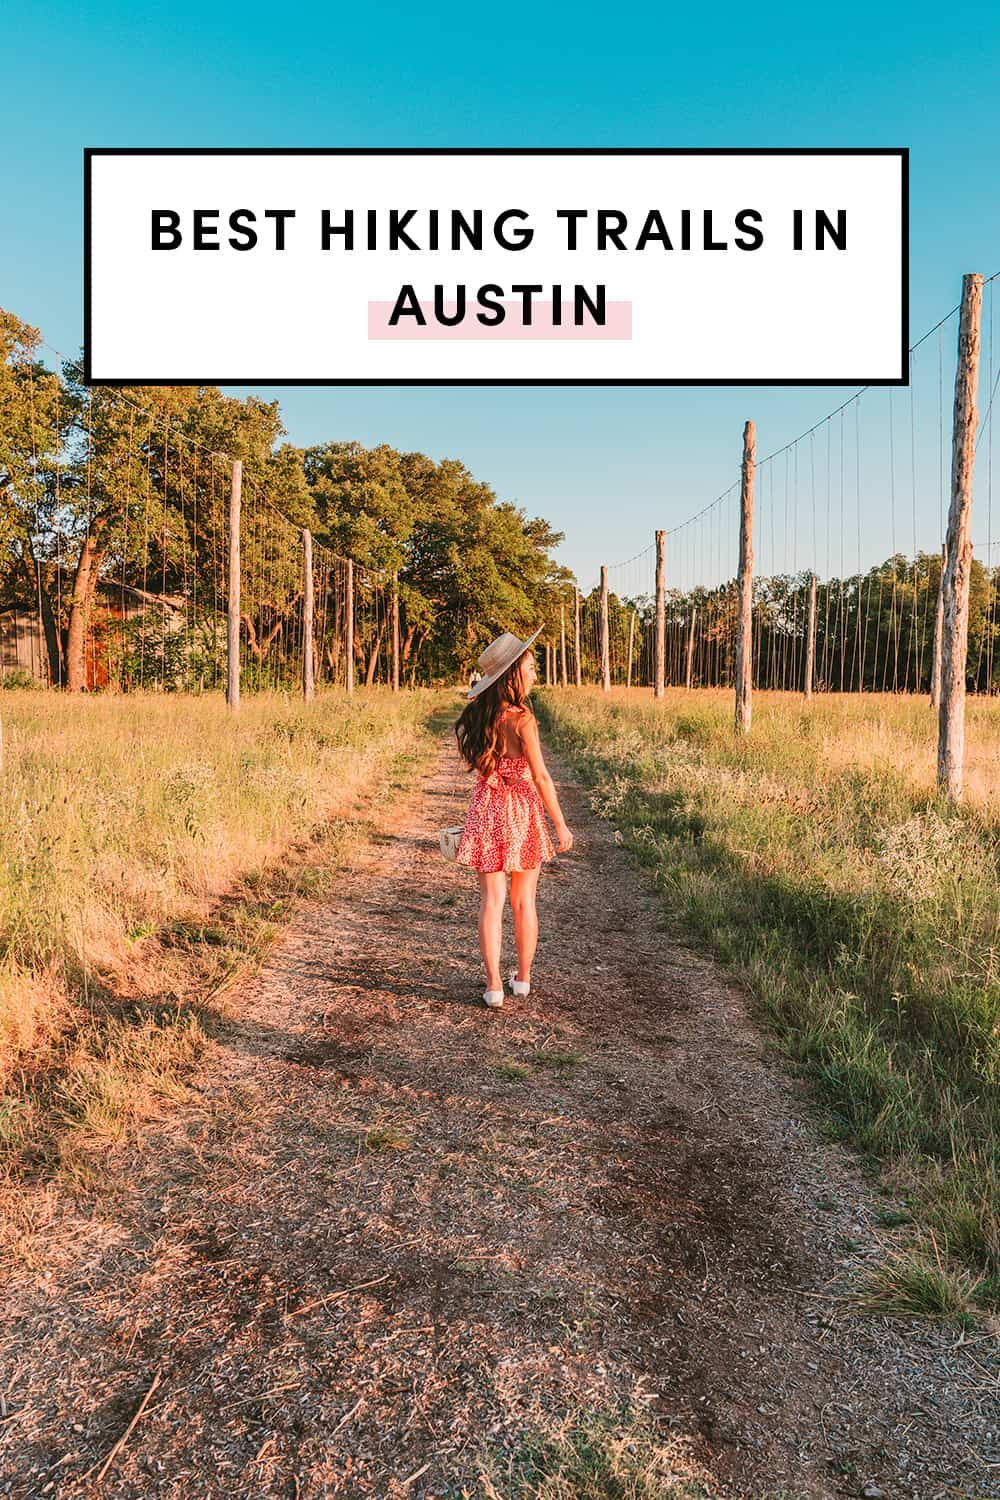 Best Hiking Trails In Austin - A Taste of Koko. Austin ranks among the fittest cities in America and we're so lucky to have so many hiking trails to get outside and exercise! Here's the guide on the best Austin hiking trails with hours, costs, tips, and any new restrictions. #exploreaustin #travelaustin #austinhiking